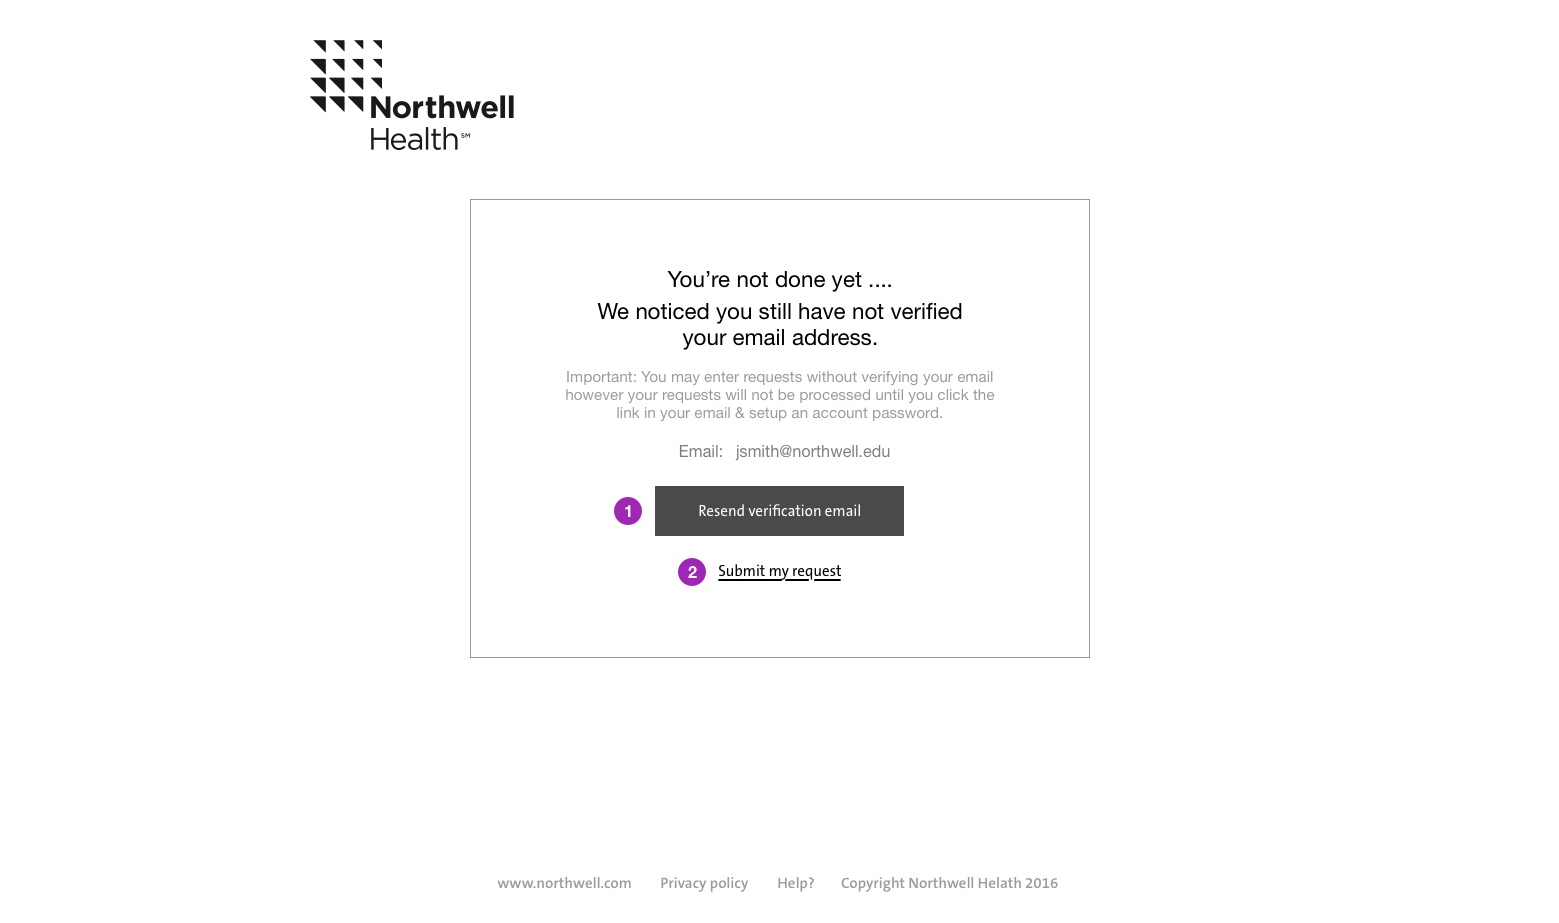 Sample wireframe of a prompt during first time (or unverified user flow). Unique business requirement to allow @northwell.edu email address to create request without require email verification. Unverified accounts had limitation, however was beneficial for internal communication flow and users could be maunally verified by an admin user.